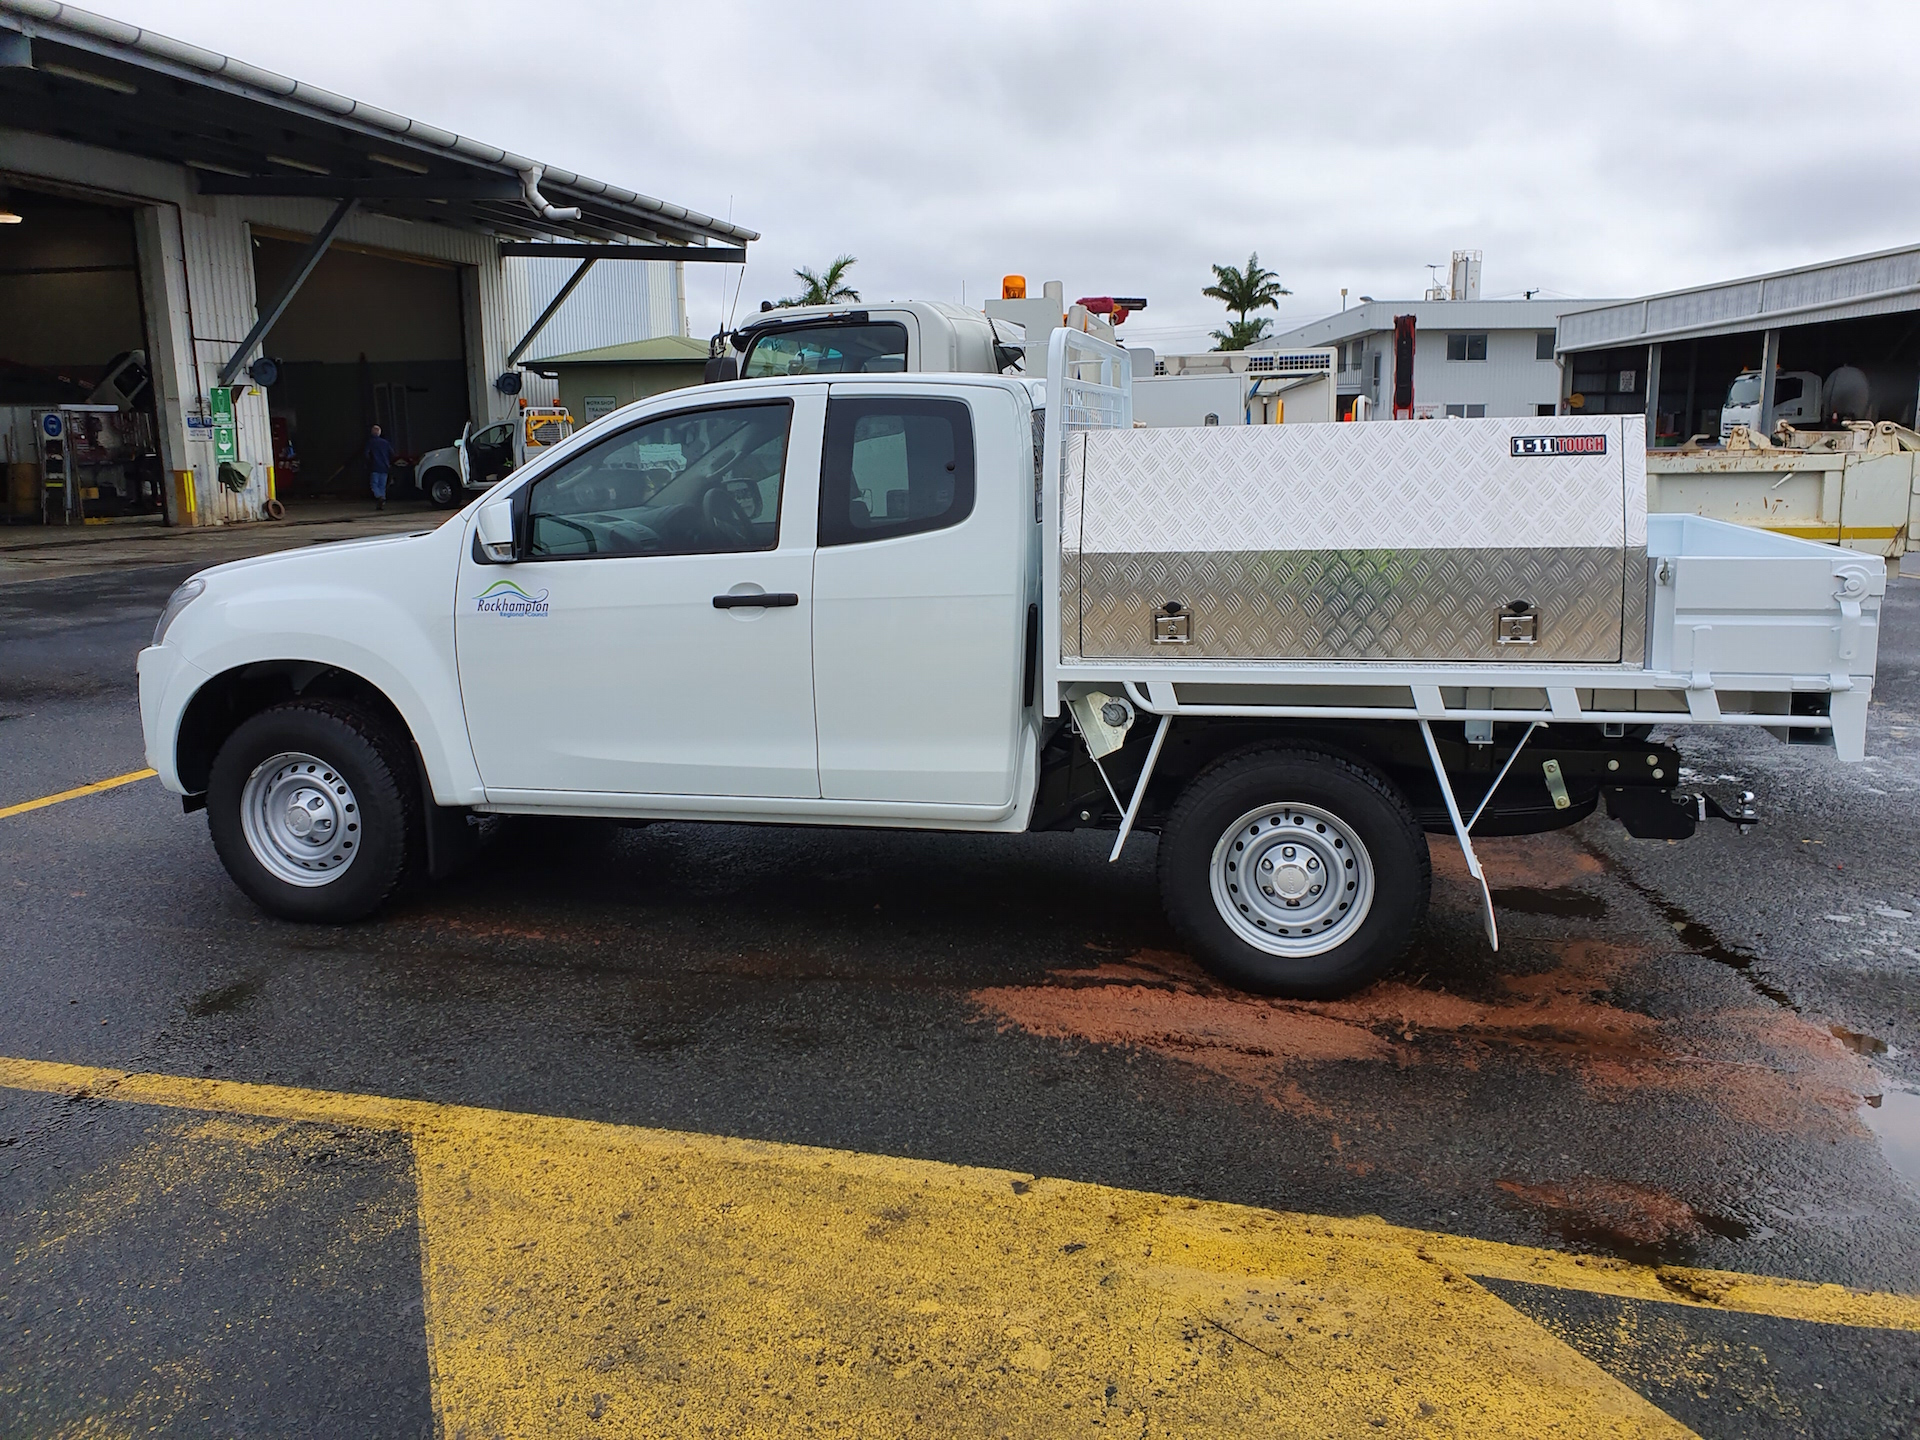 Isuzu Ute tray body Drop side with customised ToolBox fitted to side